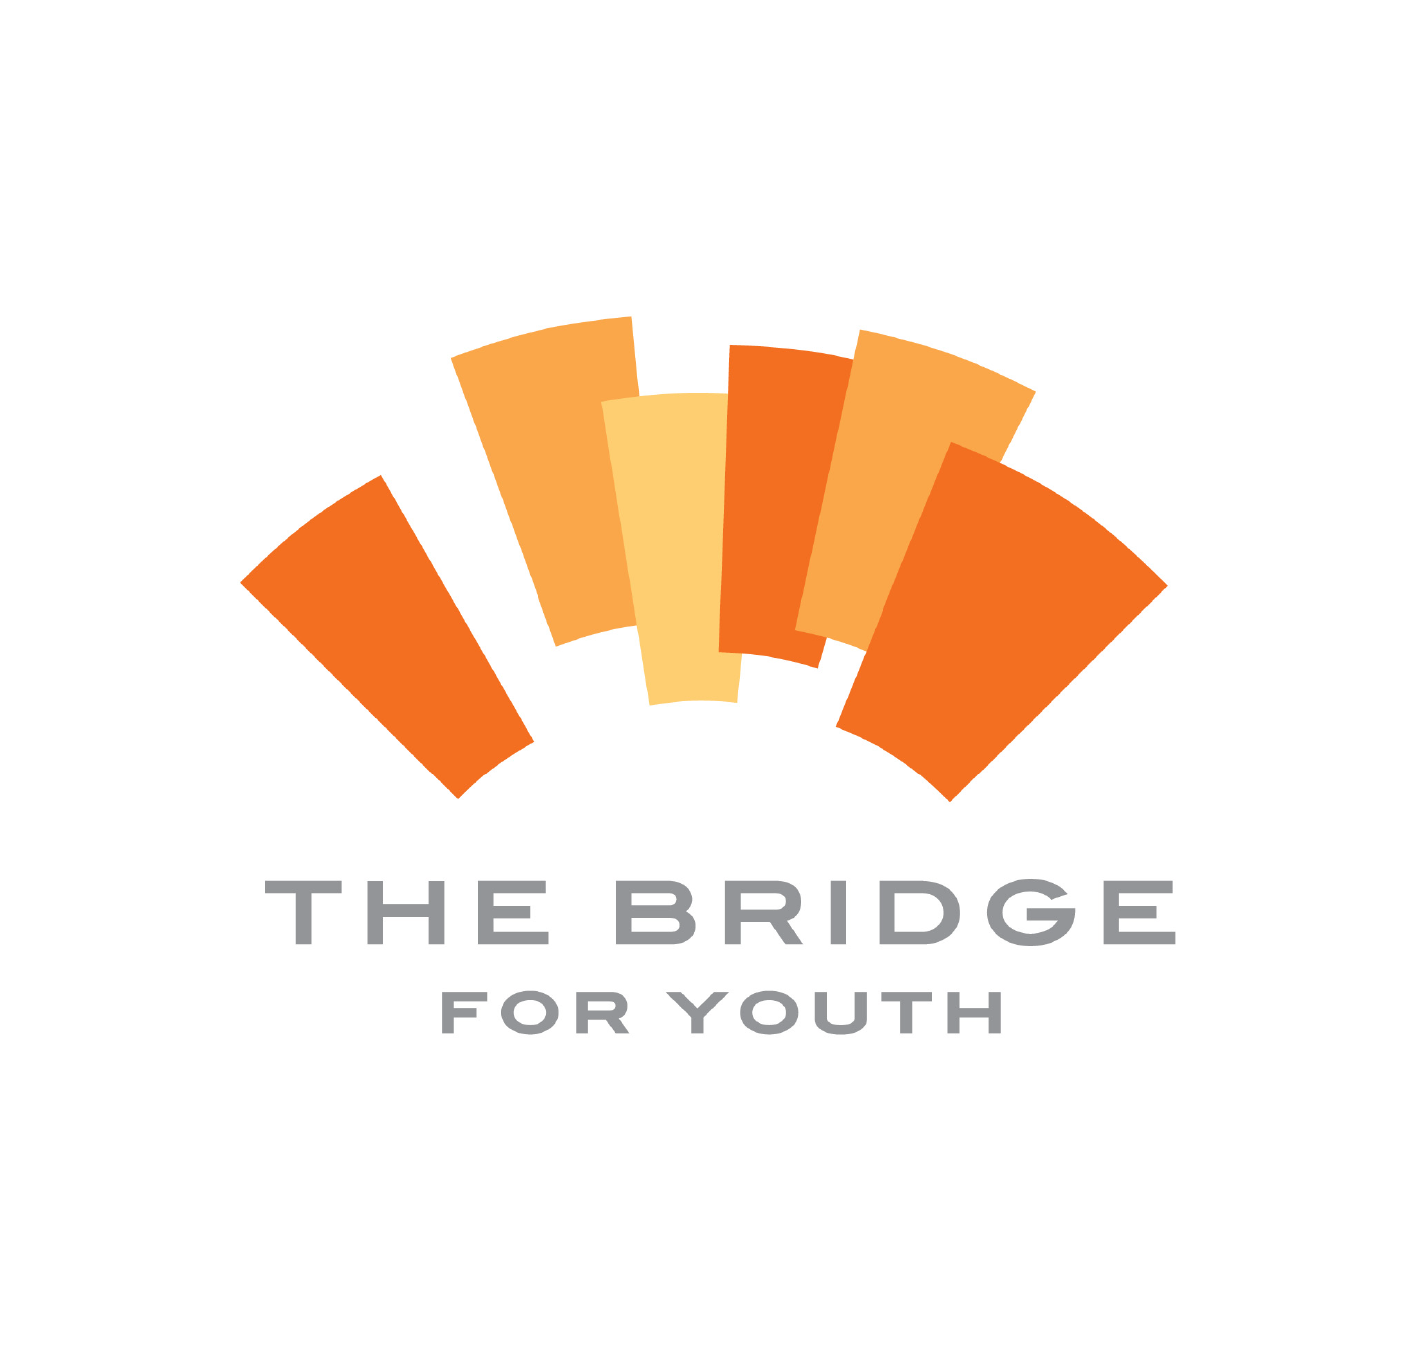 The Bridge for Youth - The Bridge for Youth's mission is to provide runaway and homeless youth safe shelter, assist in the prevention and resolution of family conflicts and reunify families whenever possible.